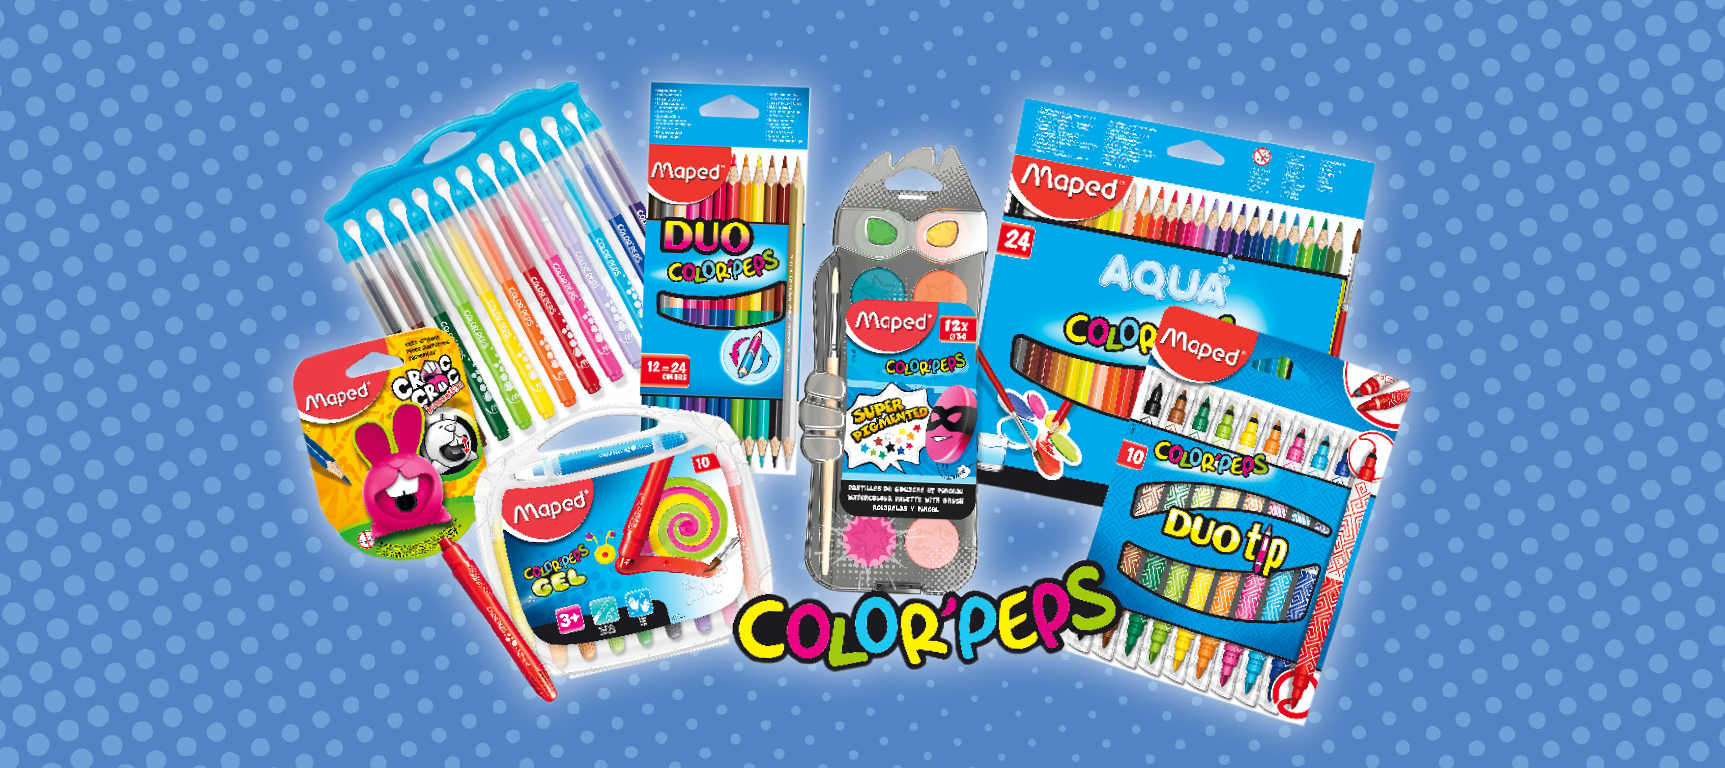 WIN An Exclusive Bundle of Color'Peps Prizes!